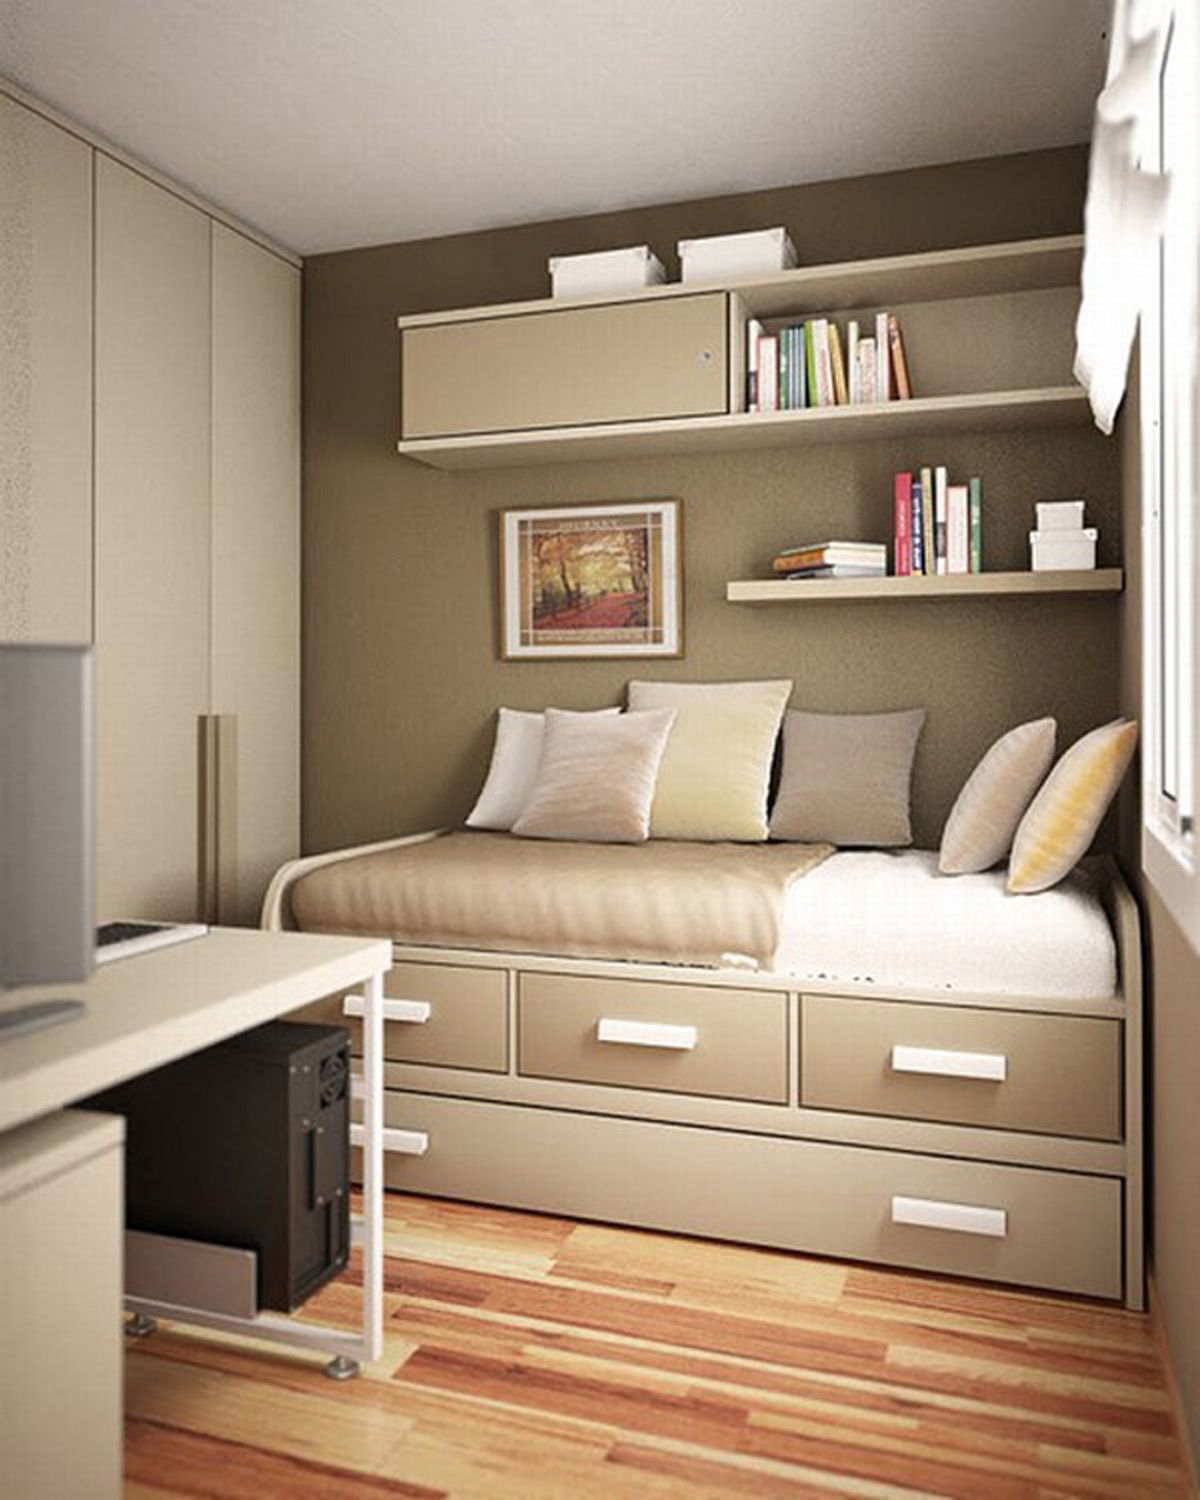 contemporary small bedroom ideas - Decorate Small Bedroom